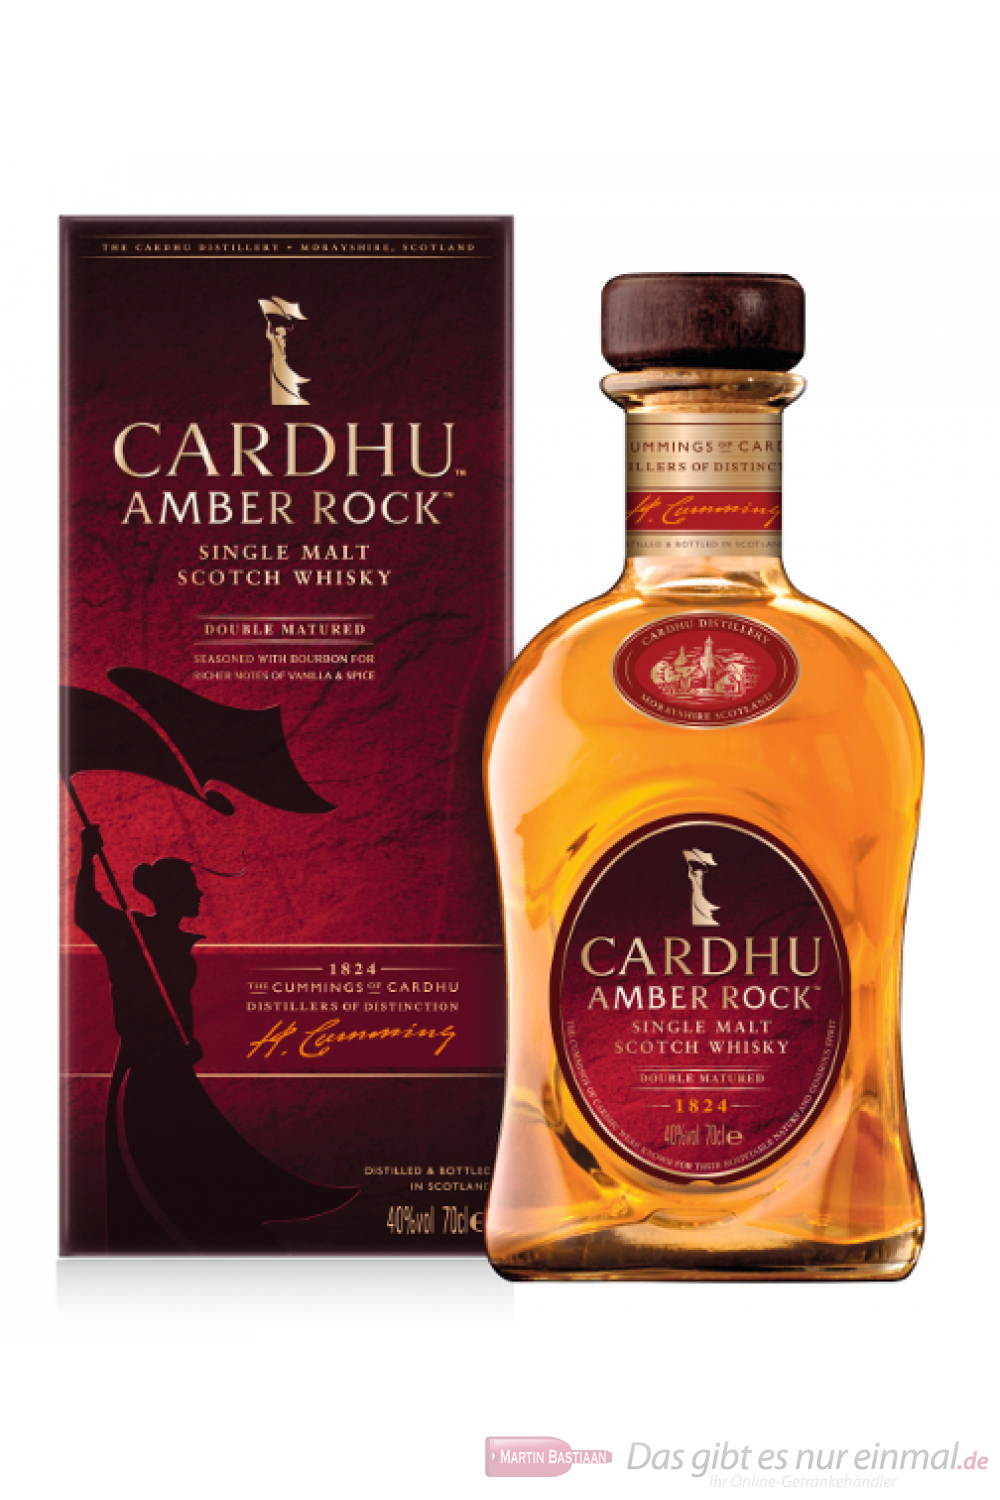 Cardhu Amber Rock Single Malt Scotch Whisky 40% 0,7l Flasche